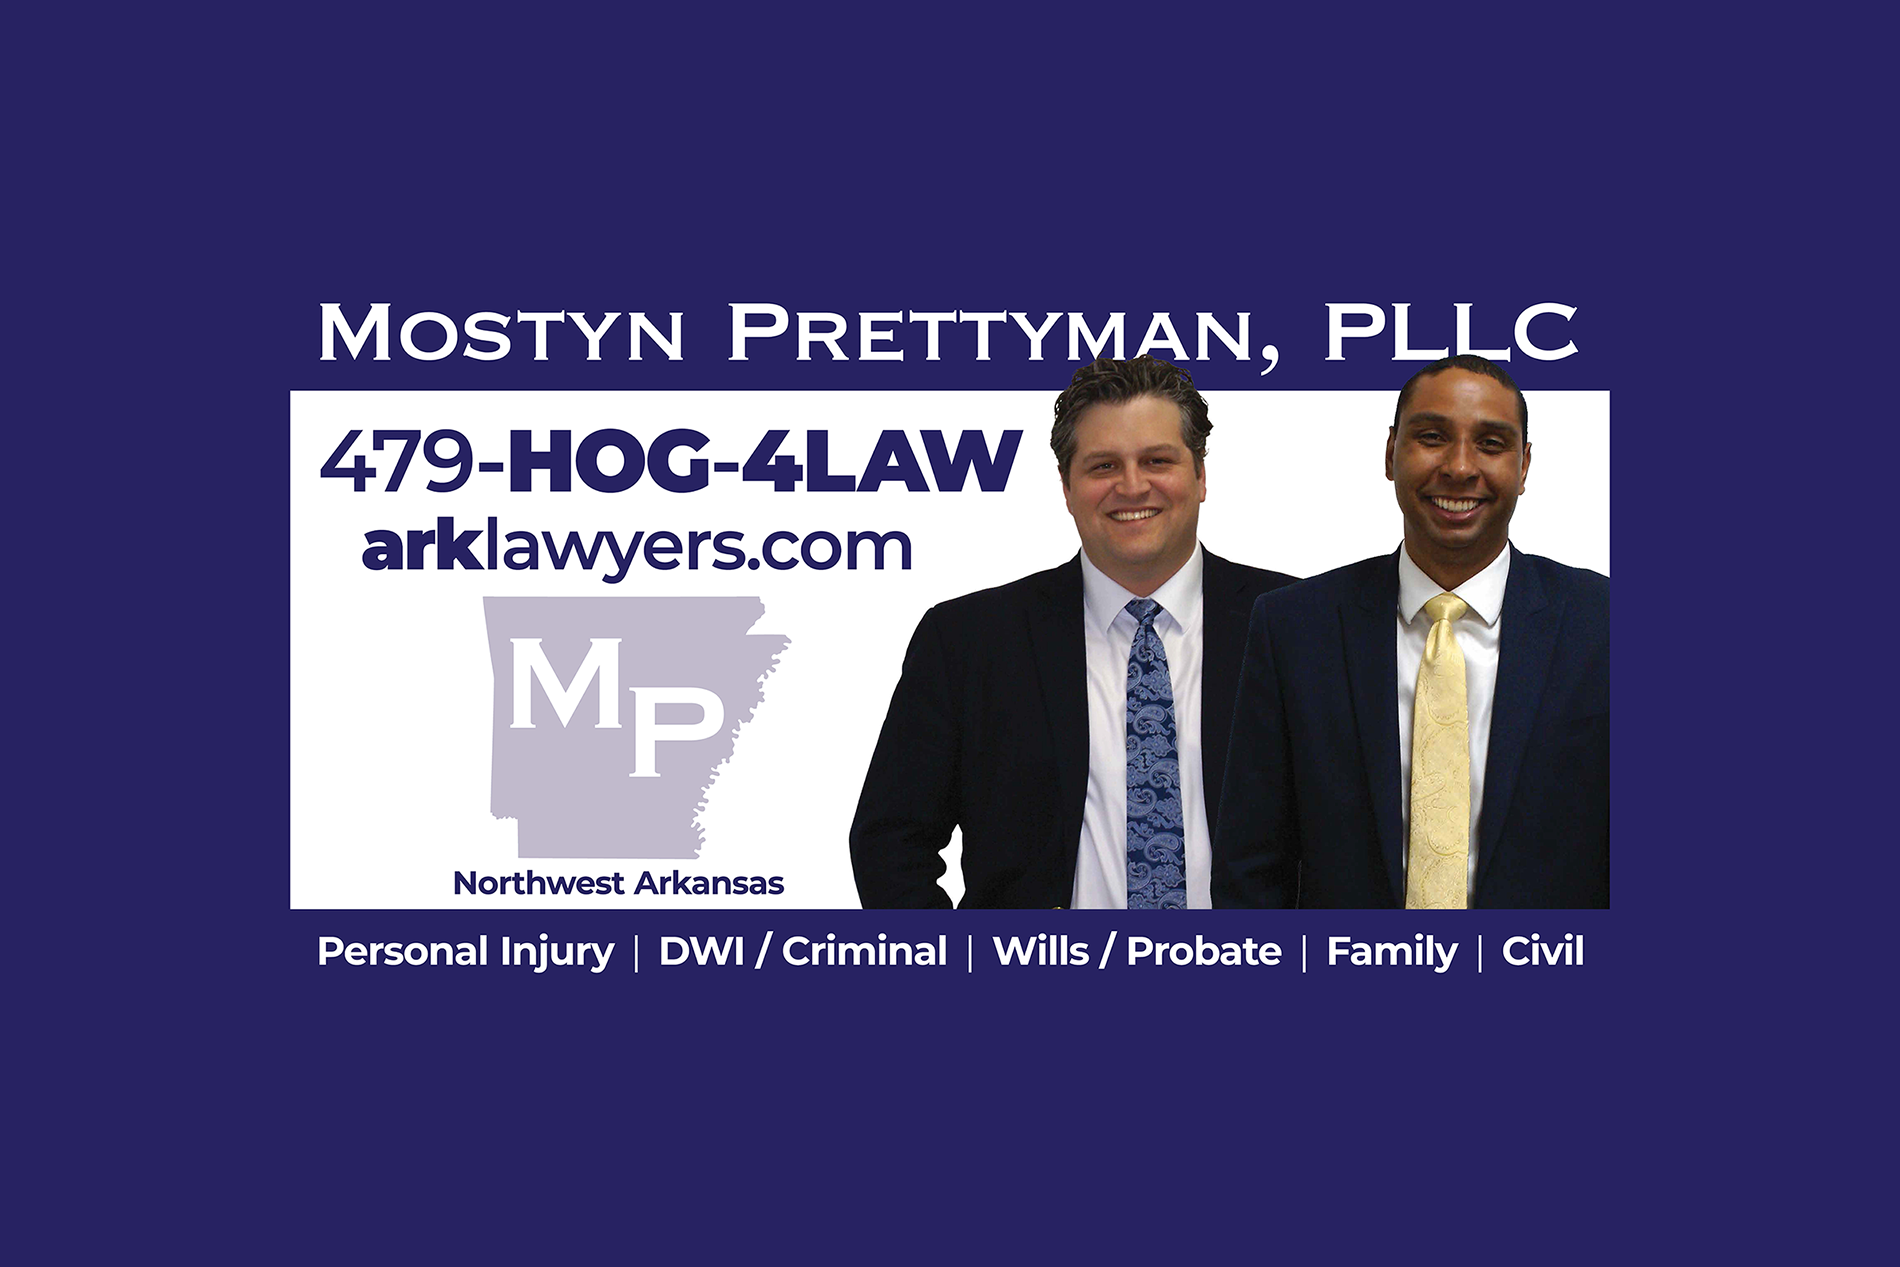 Mostyn Prettyman, PLLC | Estate Planning